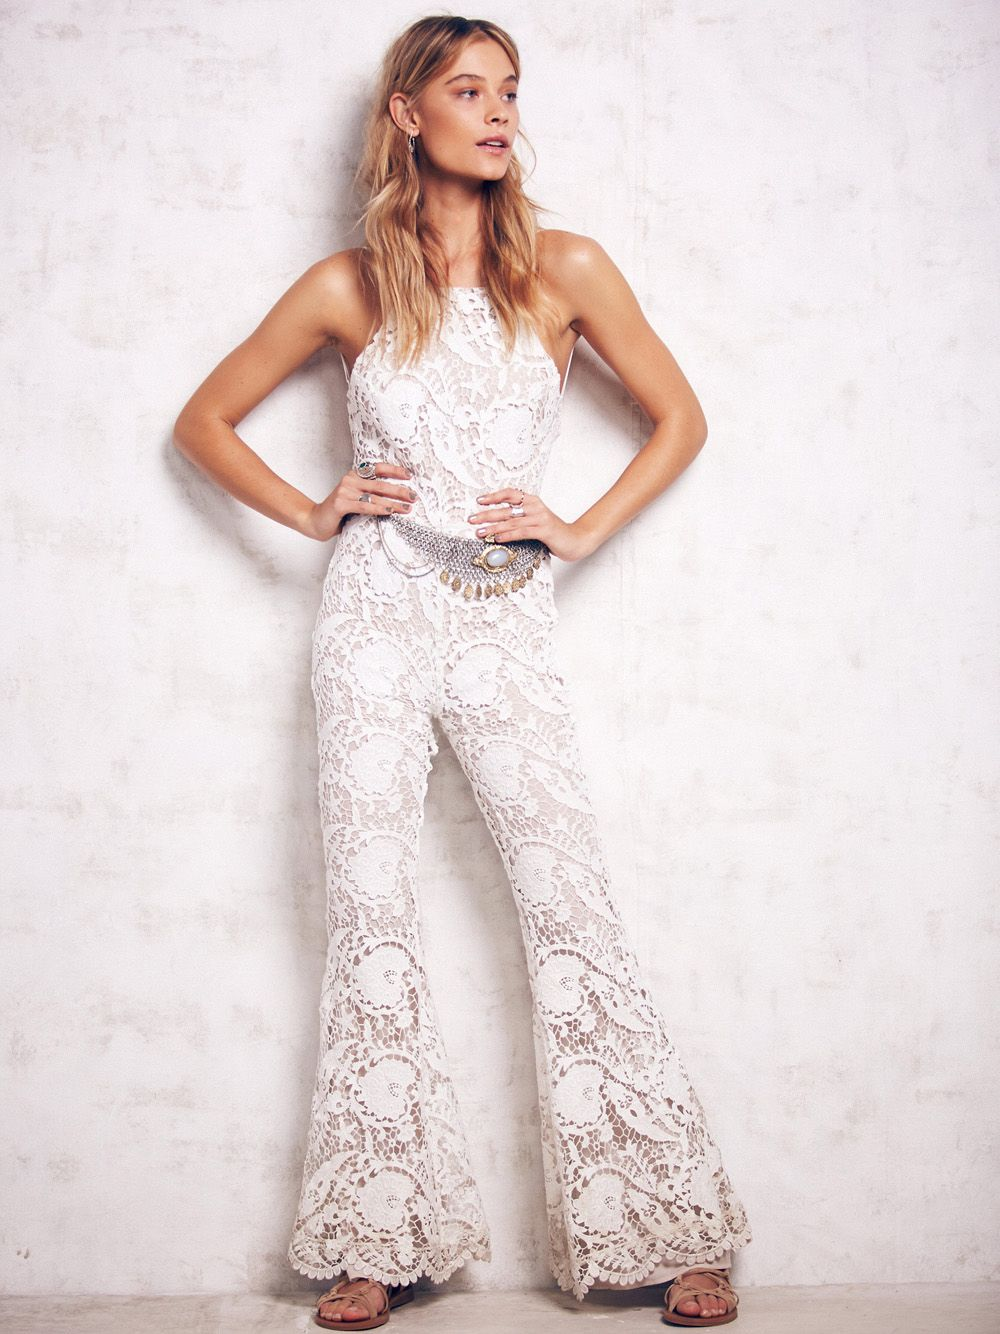 Boho wedding jumpsuit by stone cold fox for free people bride boho wedding jumpsuit by stone cold fox for free people ombrellifo Choice Image